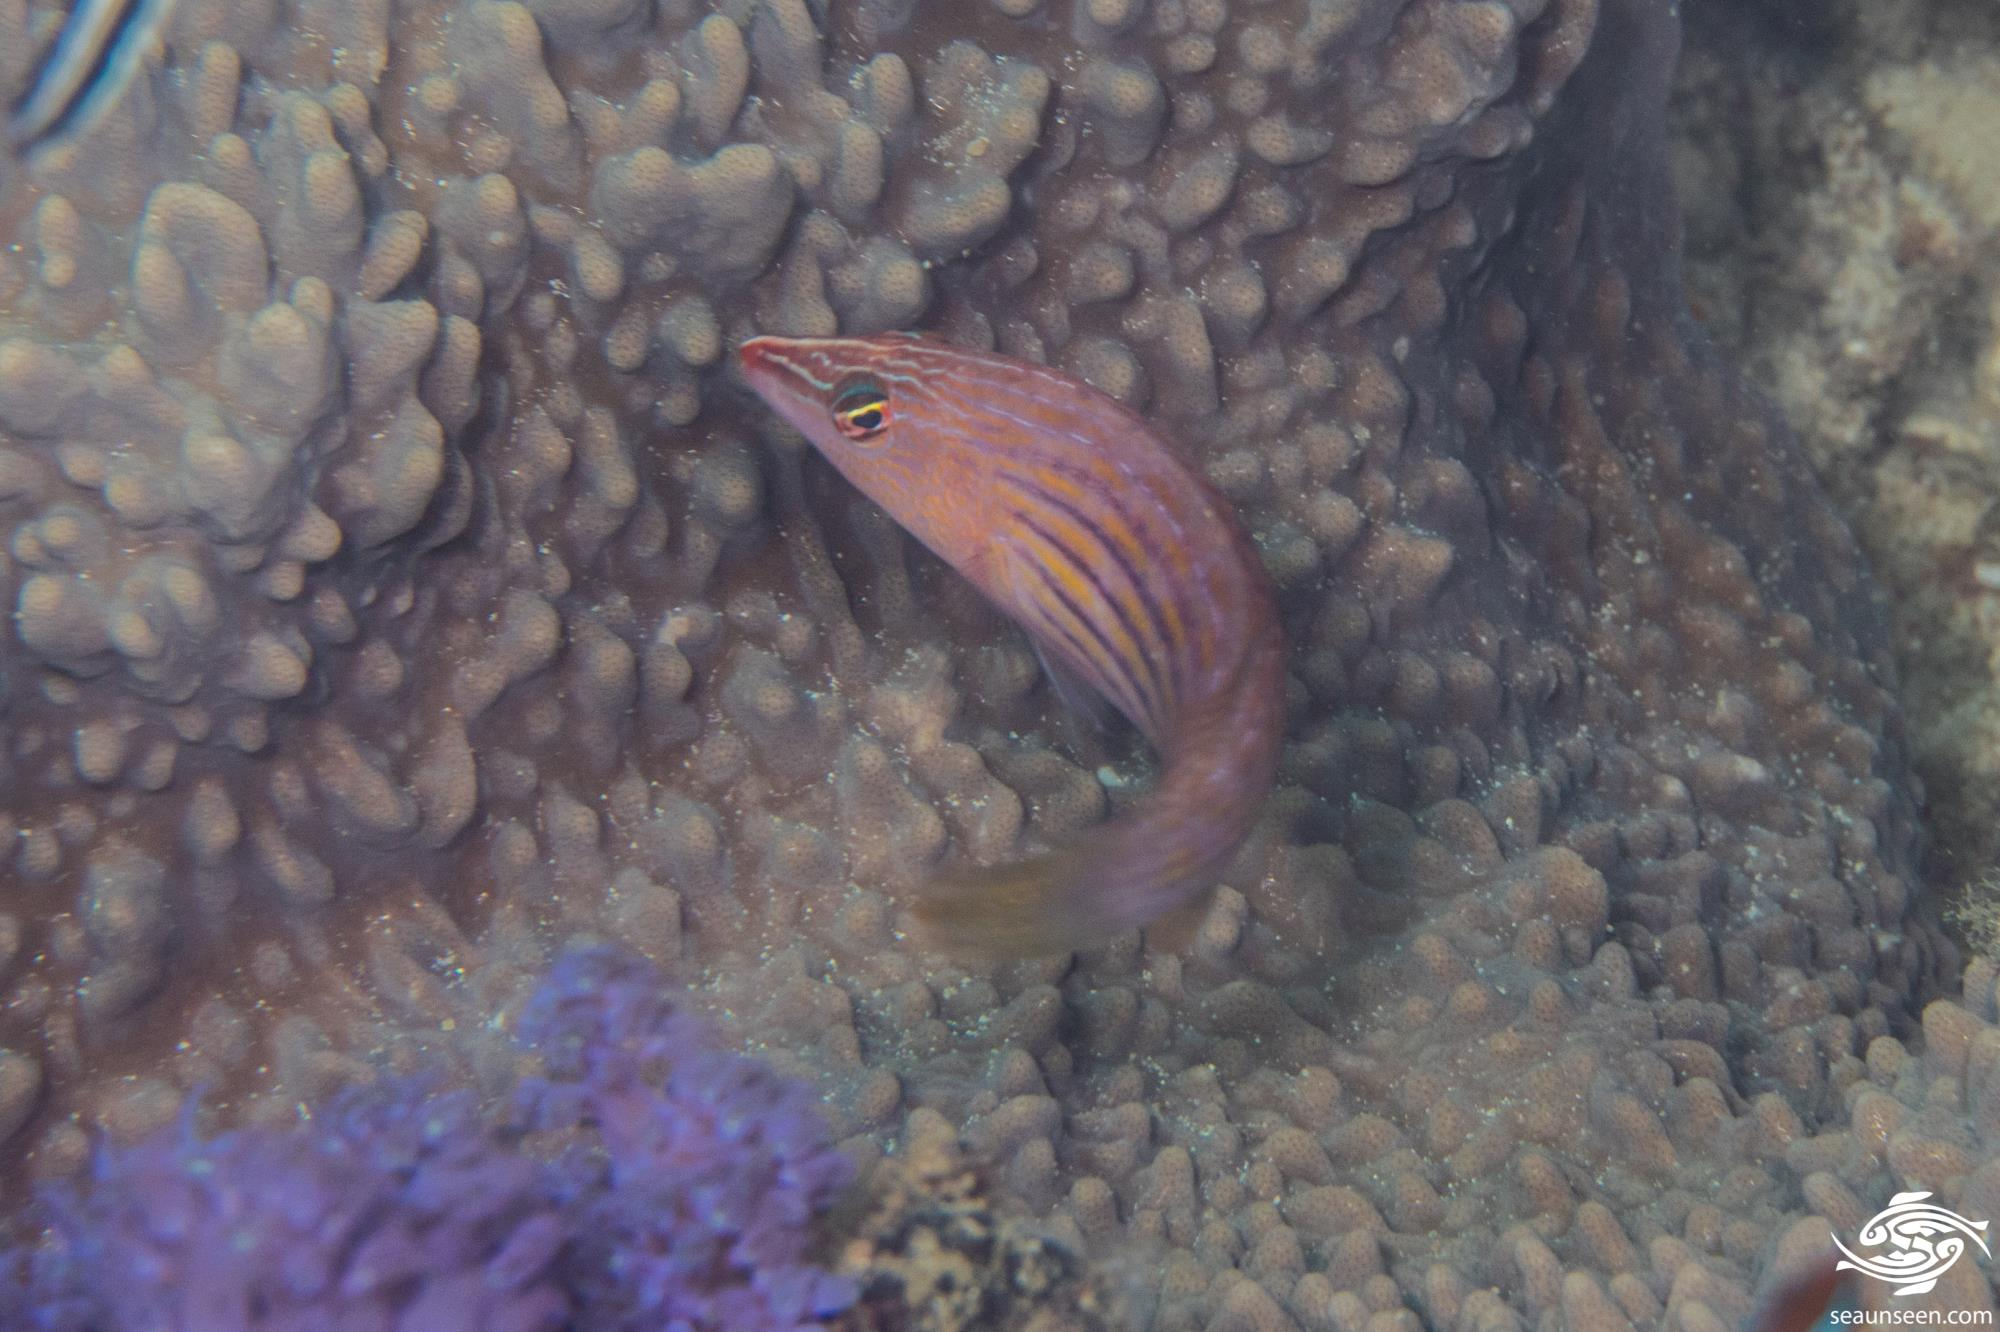 Eight lined wrasse (Pseudocheilinus octotaenia) is also known as the Eightstripe Wrasse or Eightline Wrasse.